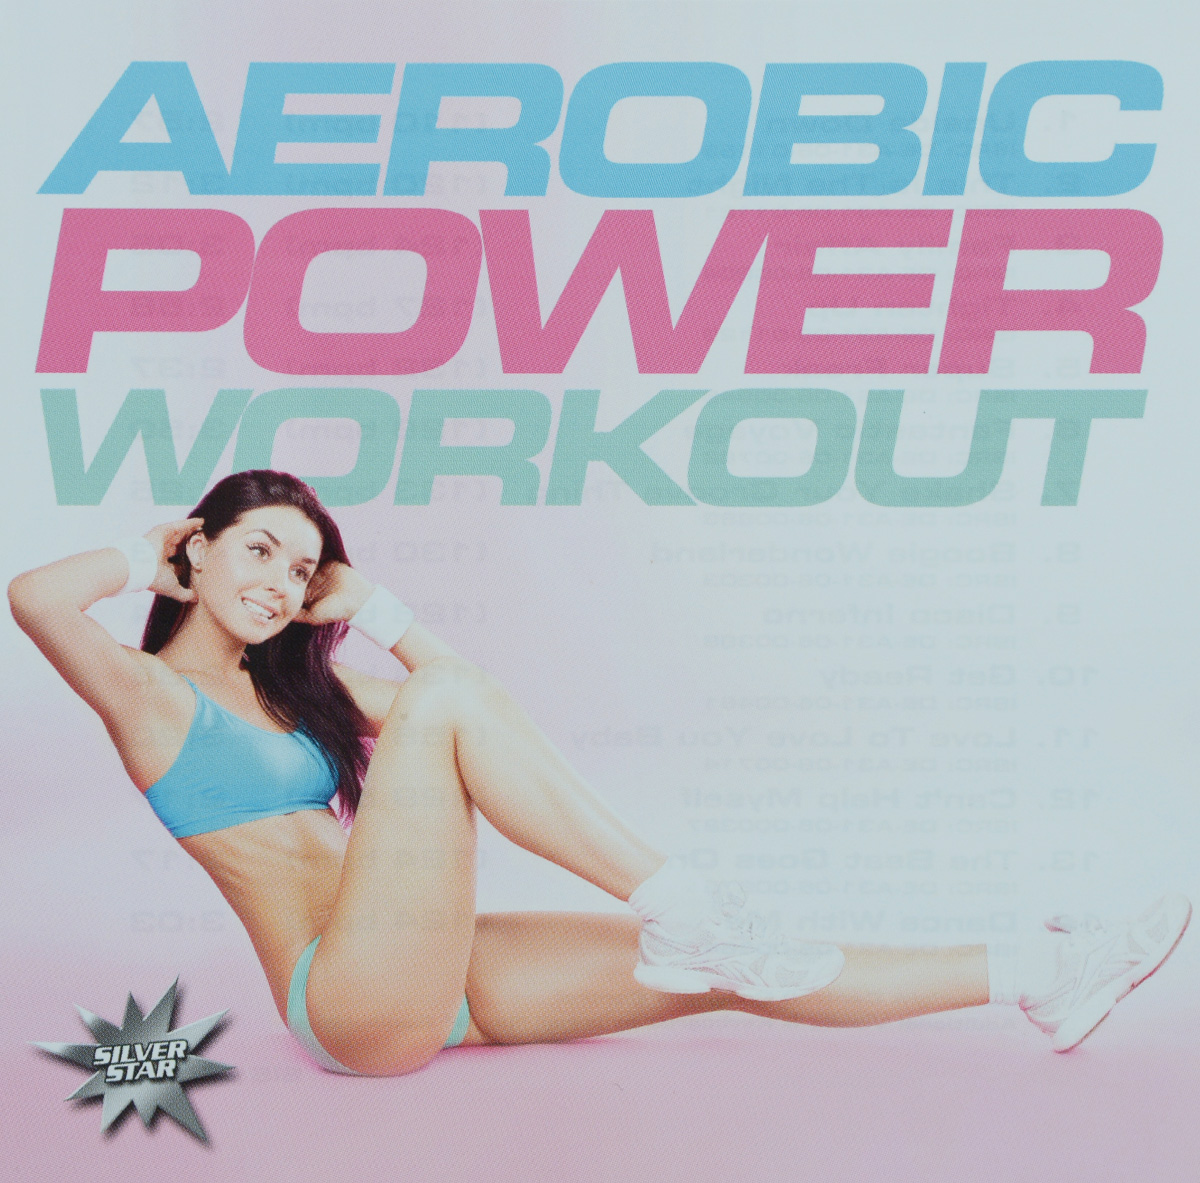 Aerobic Power Workout aerobic power workout